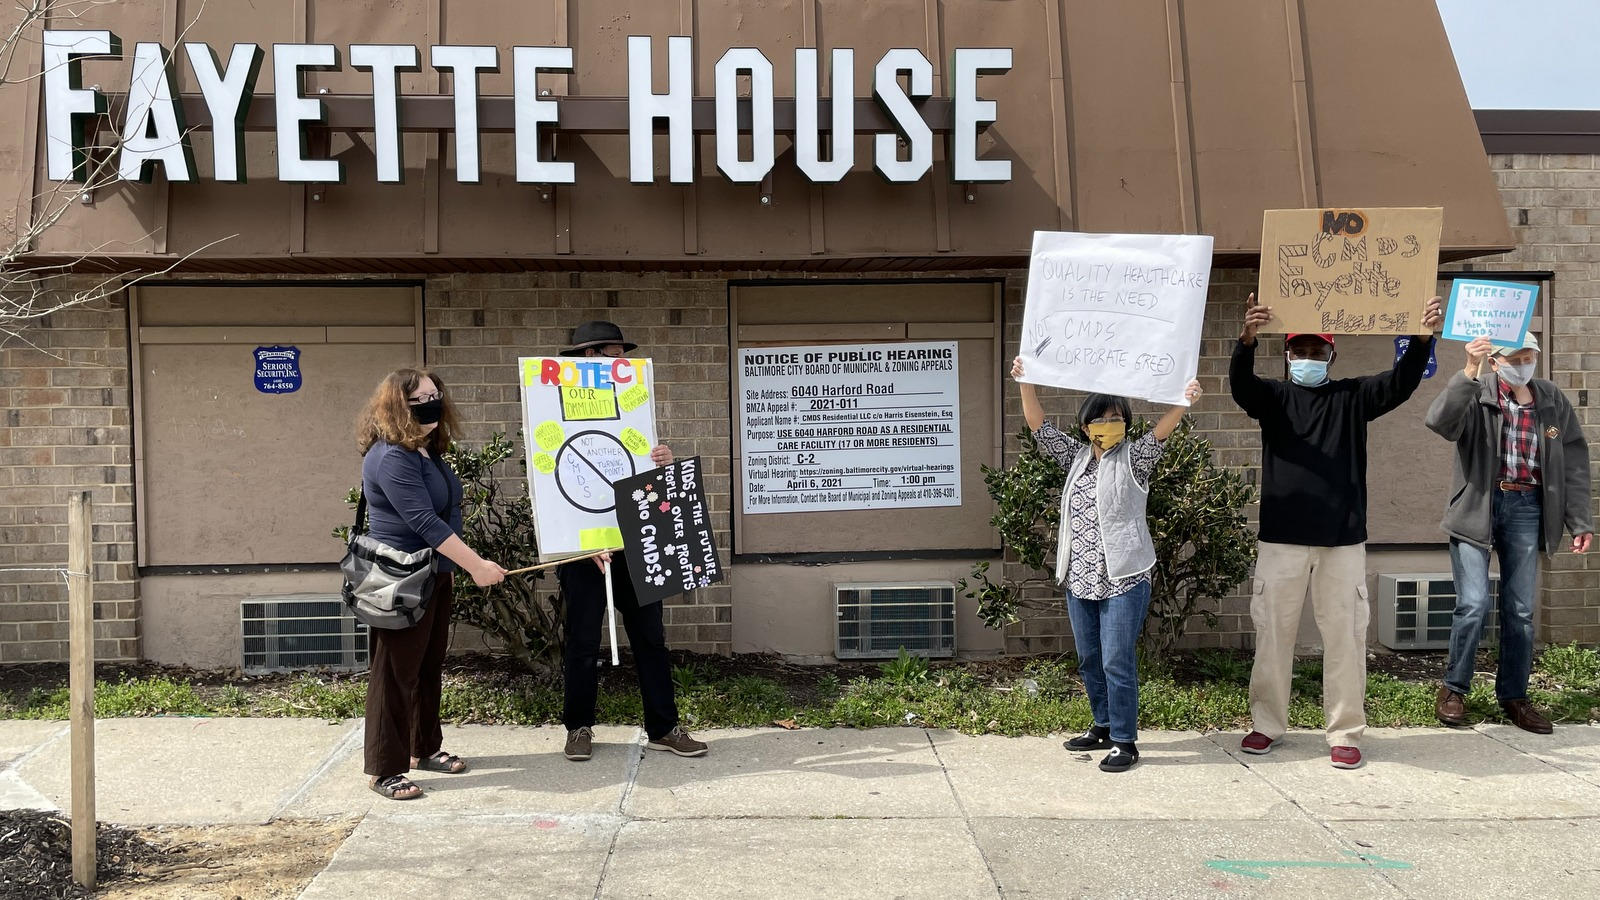 Angela Jancius (far left) and other area residents protest outside Fayette House. (Fern Shen)